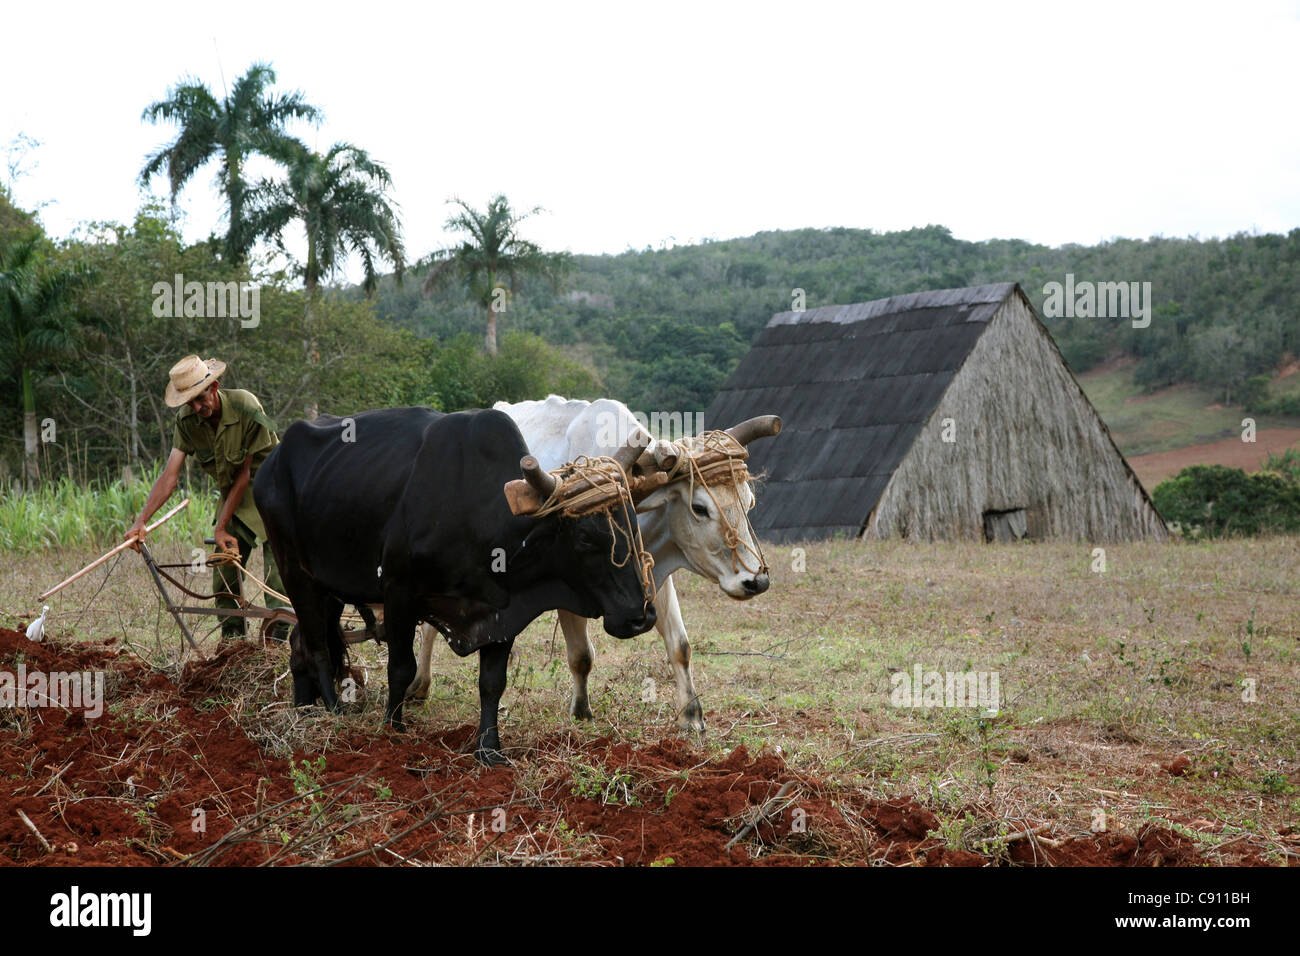 Ploughing with oxen in the Vinales Valley, Cuba. - Stock Image